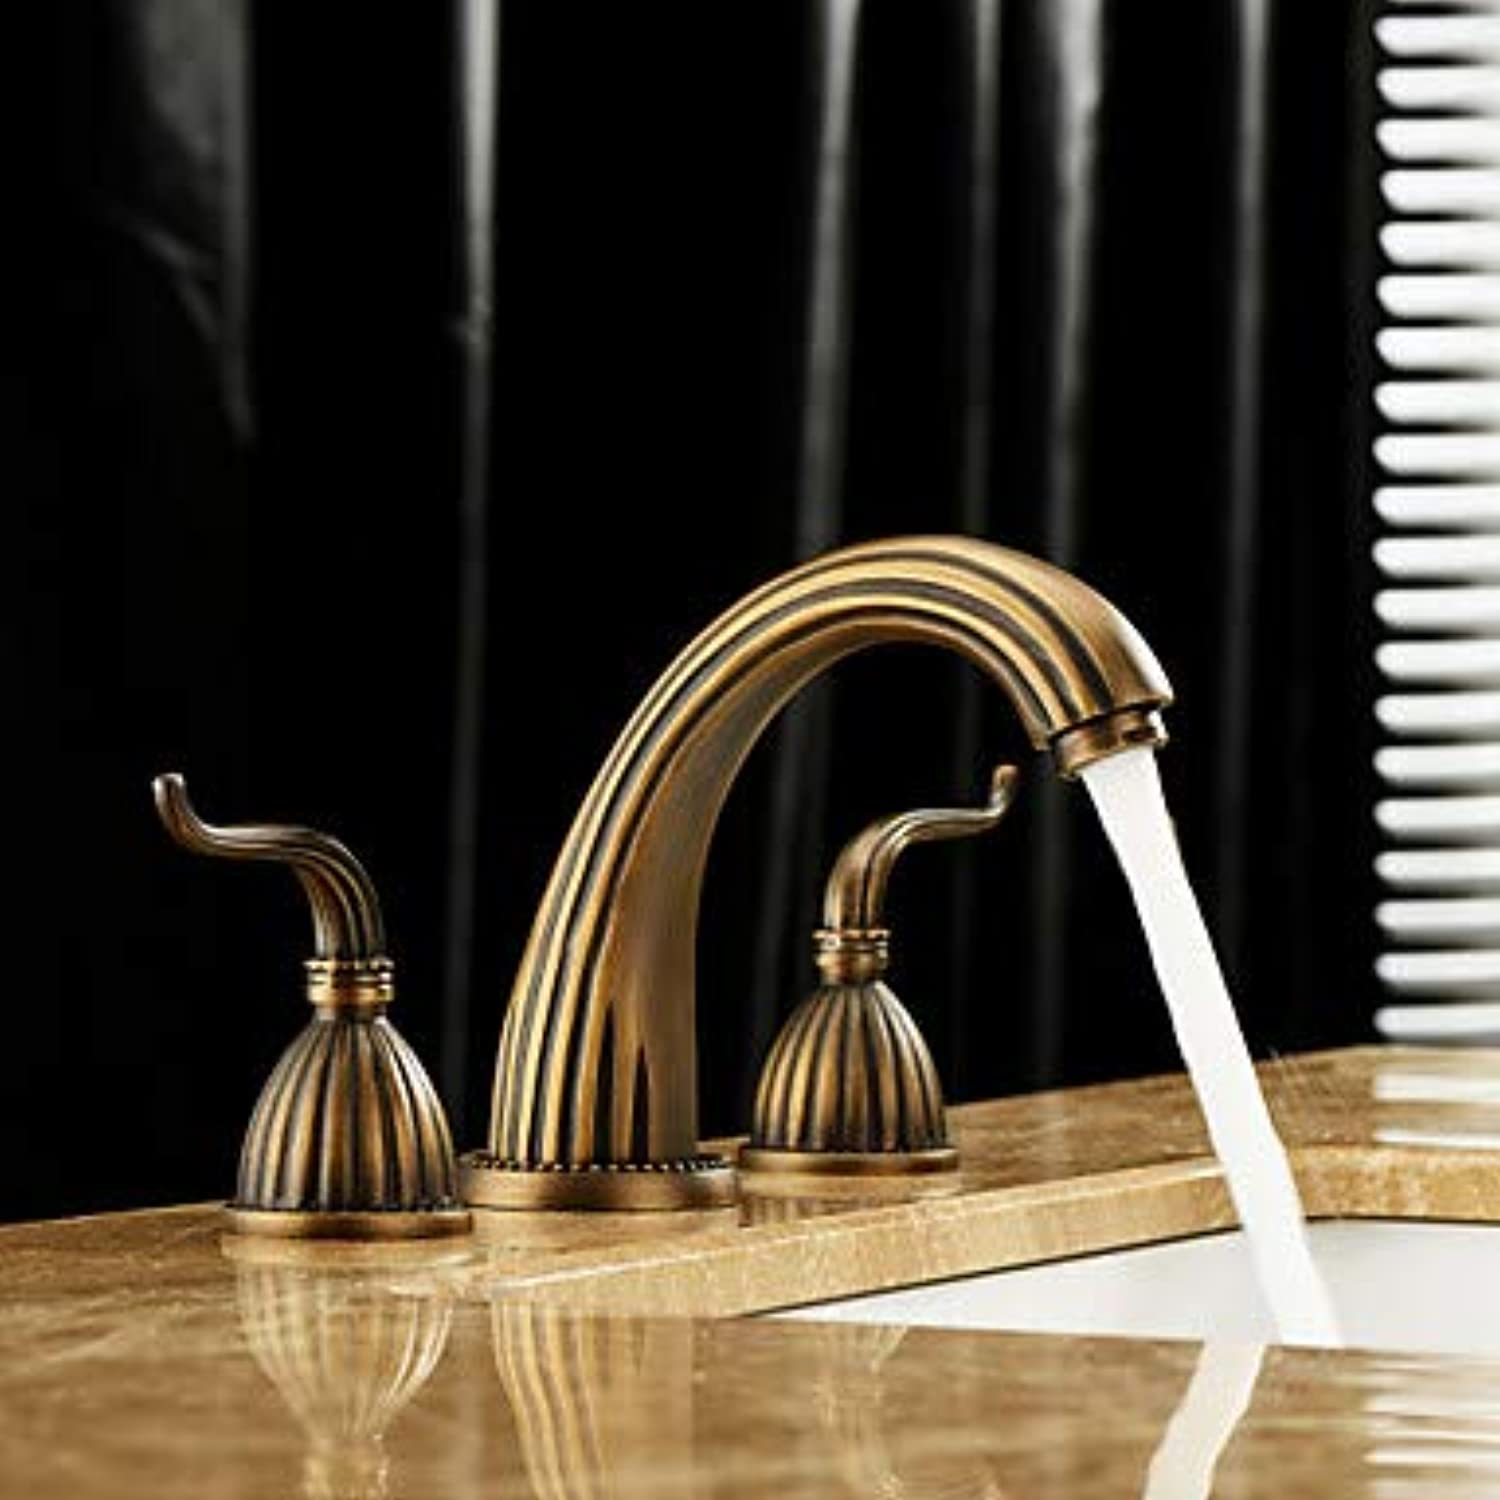 Mangeoo Bathroom Sink Faucet - Widespread Antique Brass Widespread Three Holes Two Handles Three Holesbath Taps